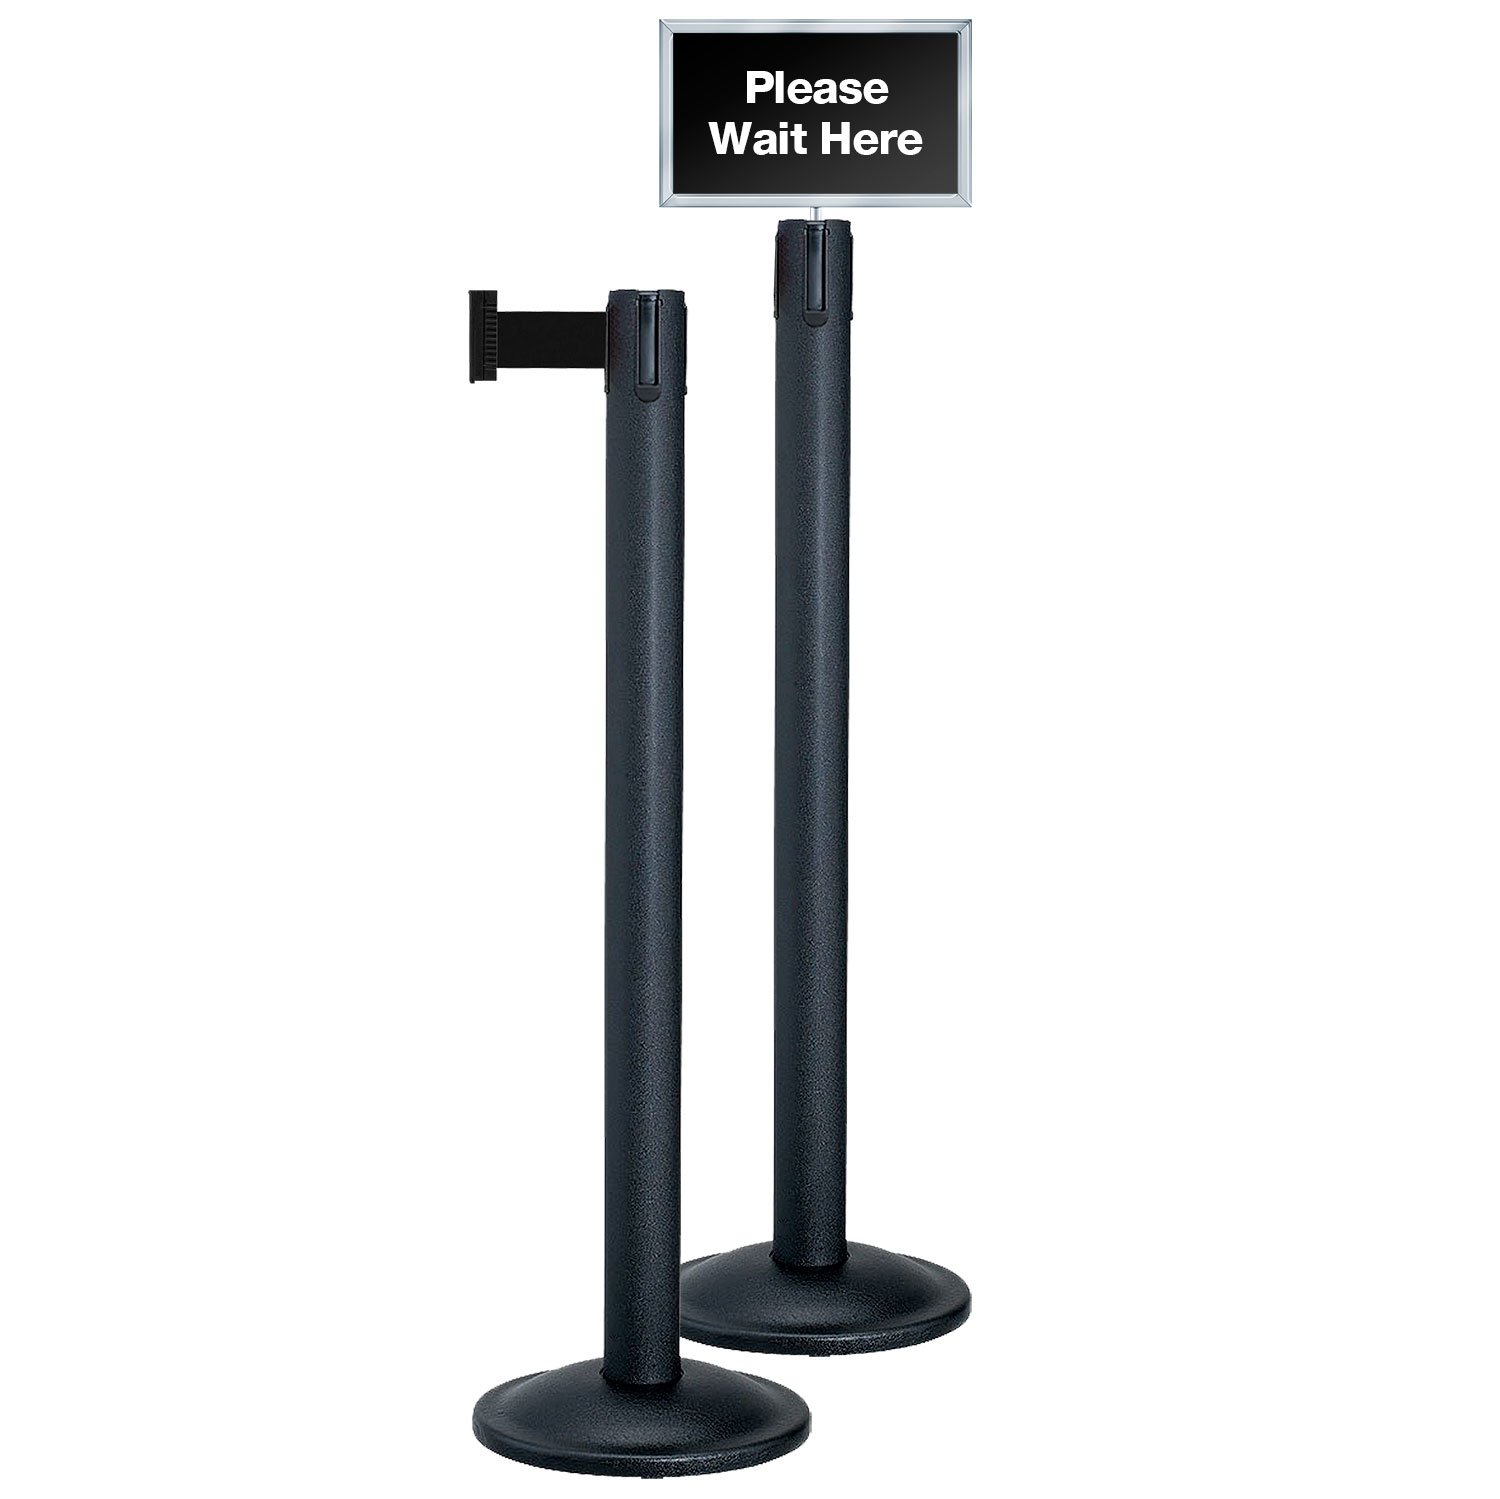 Beltrac Stanchion 2 Post Queue Line Kit, Black Post with 7 foot Black Belt and Sign